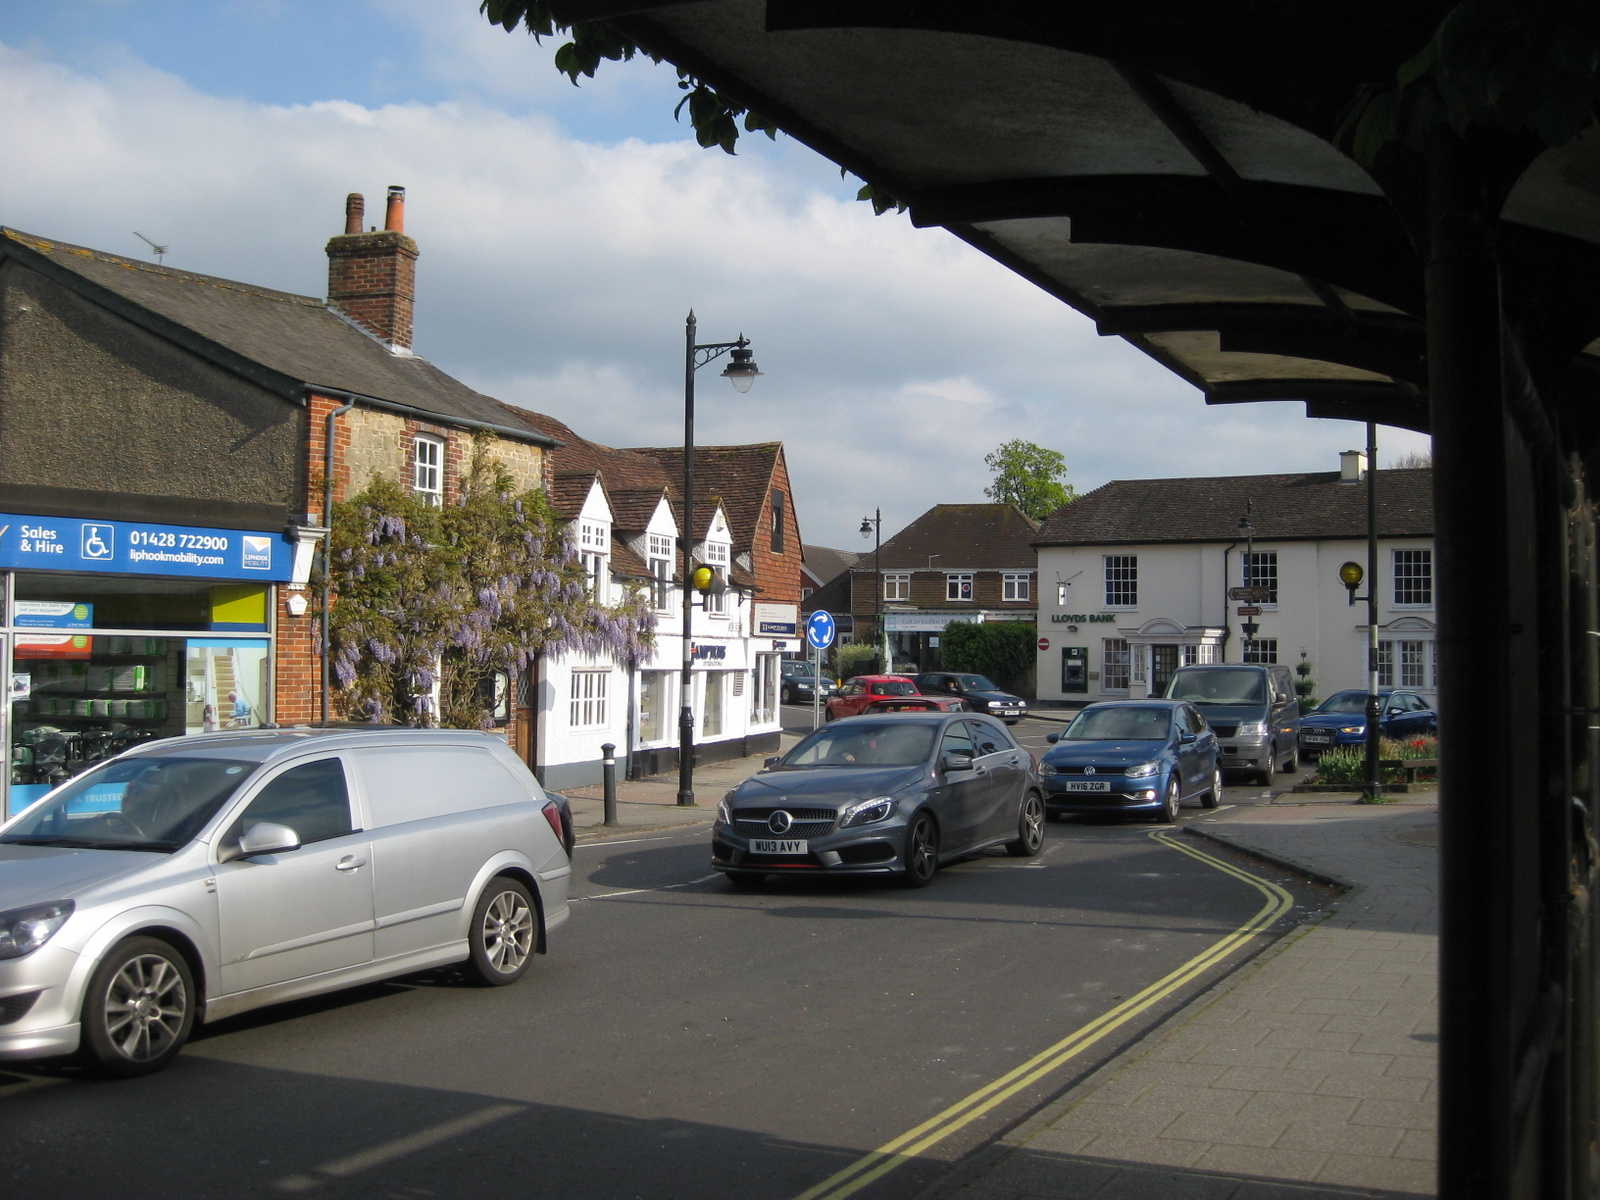 The centre of Liphook complete with rush hour traffic